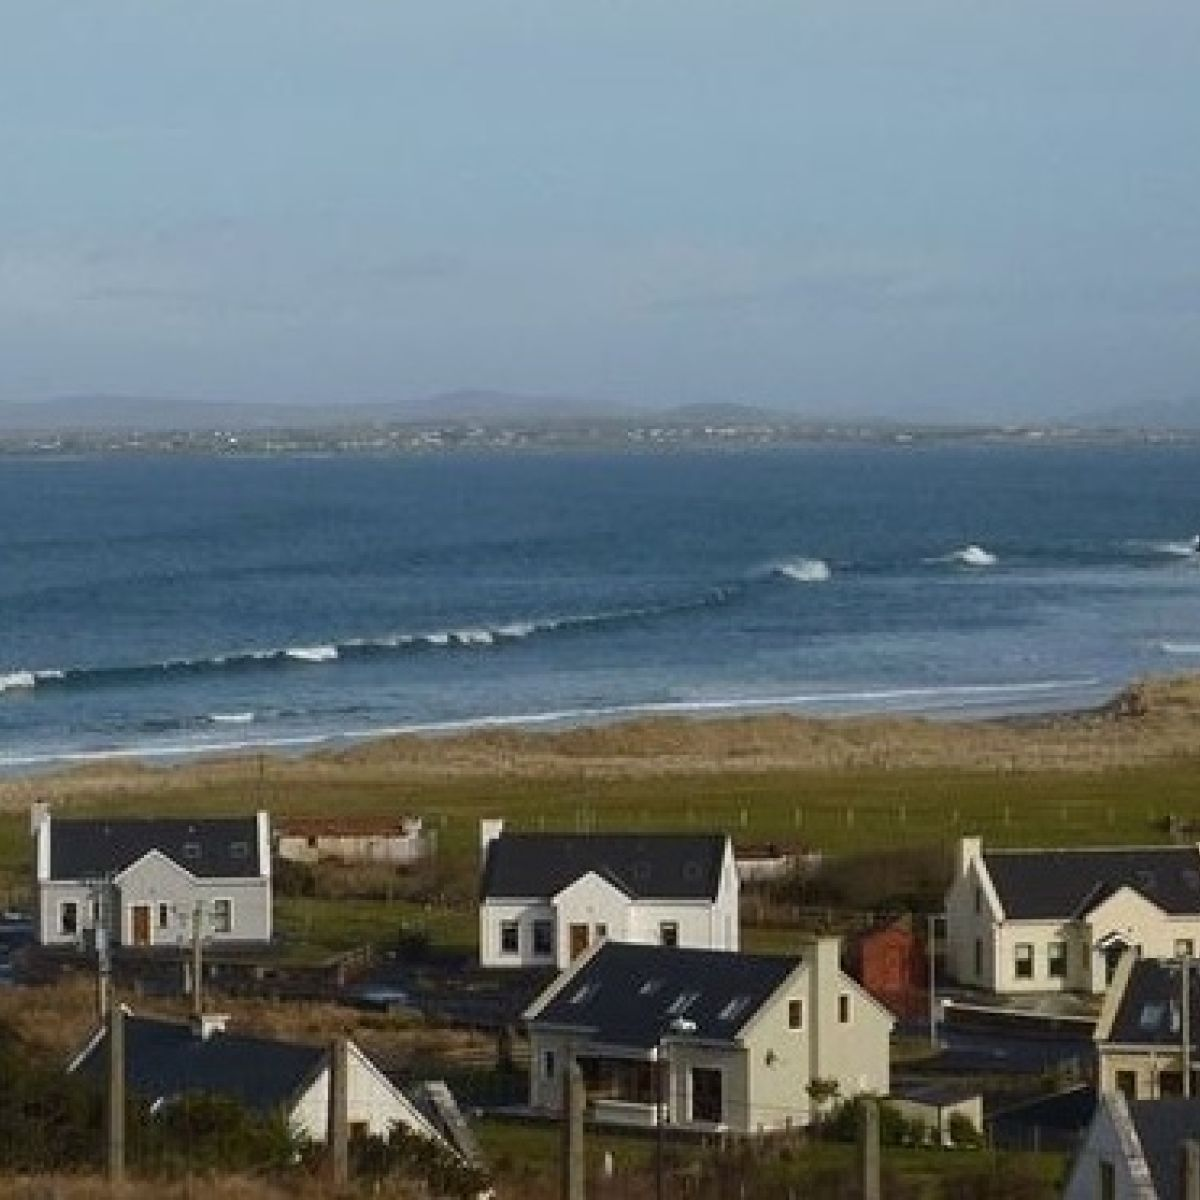 The 10 best apartments in Bundoran, Ireland | uselesspenguin.co.uk